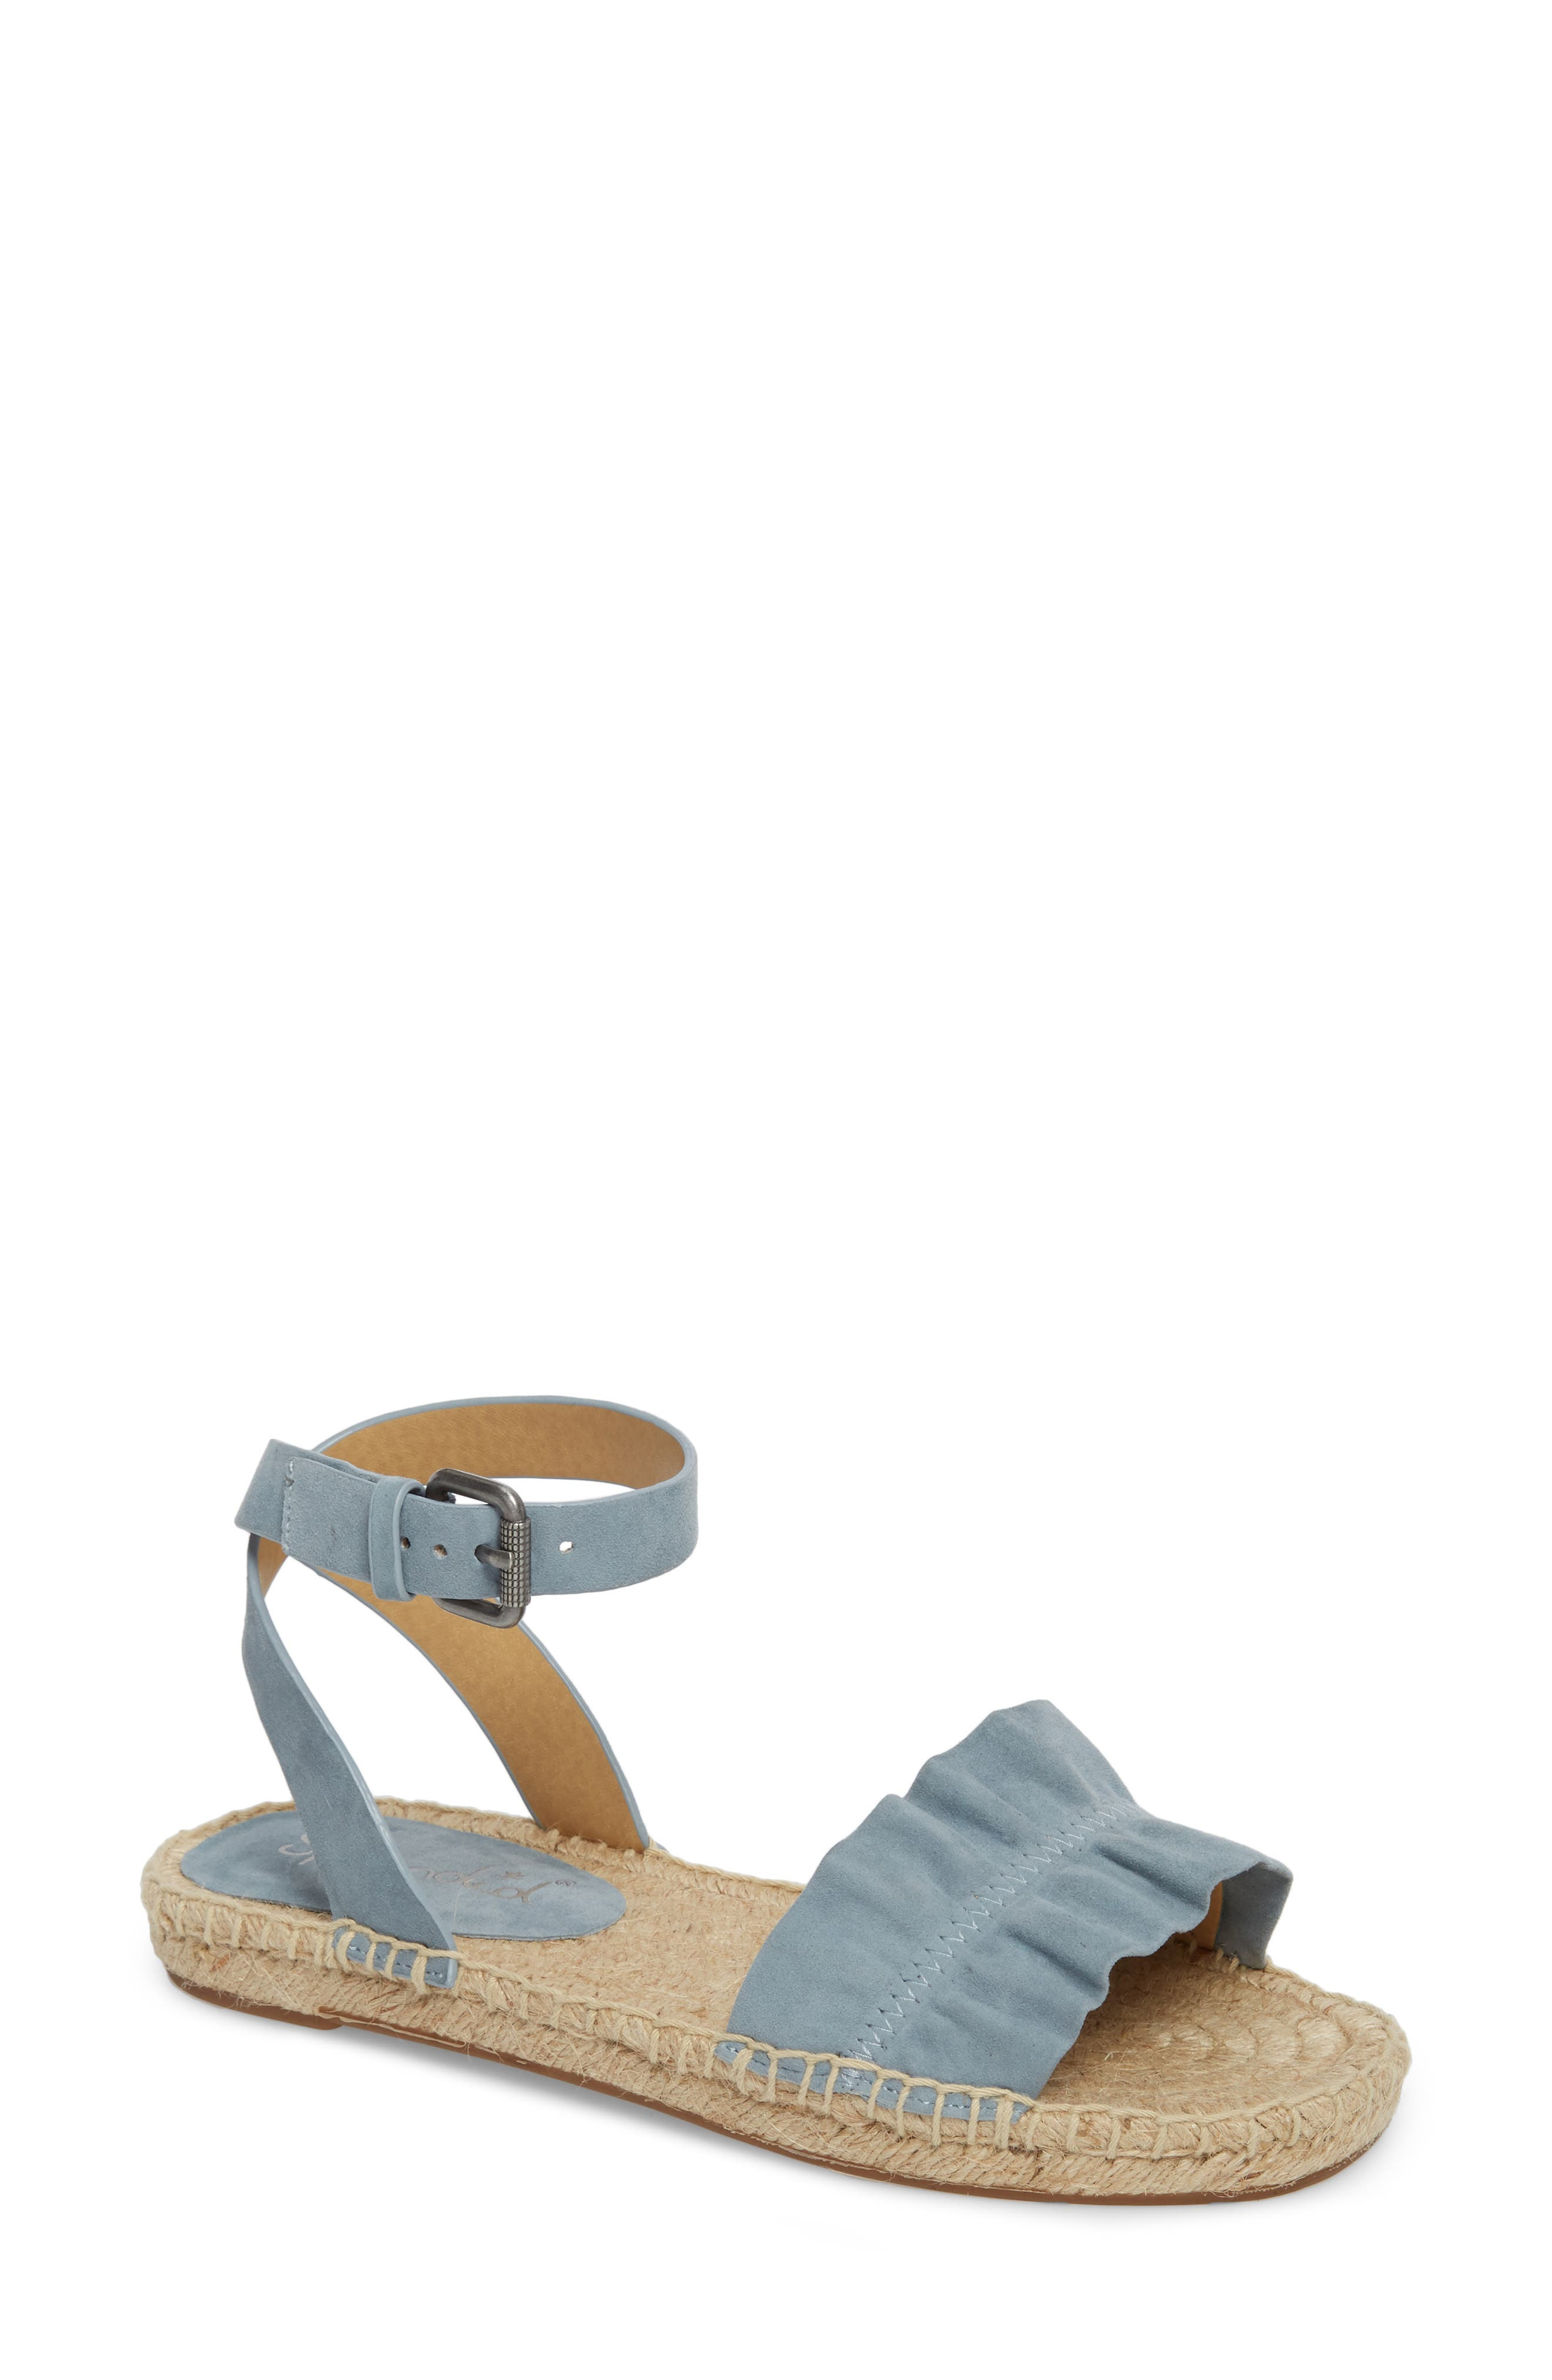 Becca Ruffled Espadrille Sandal,                         Main,                         color, Shadow Blue Suede